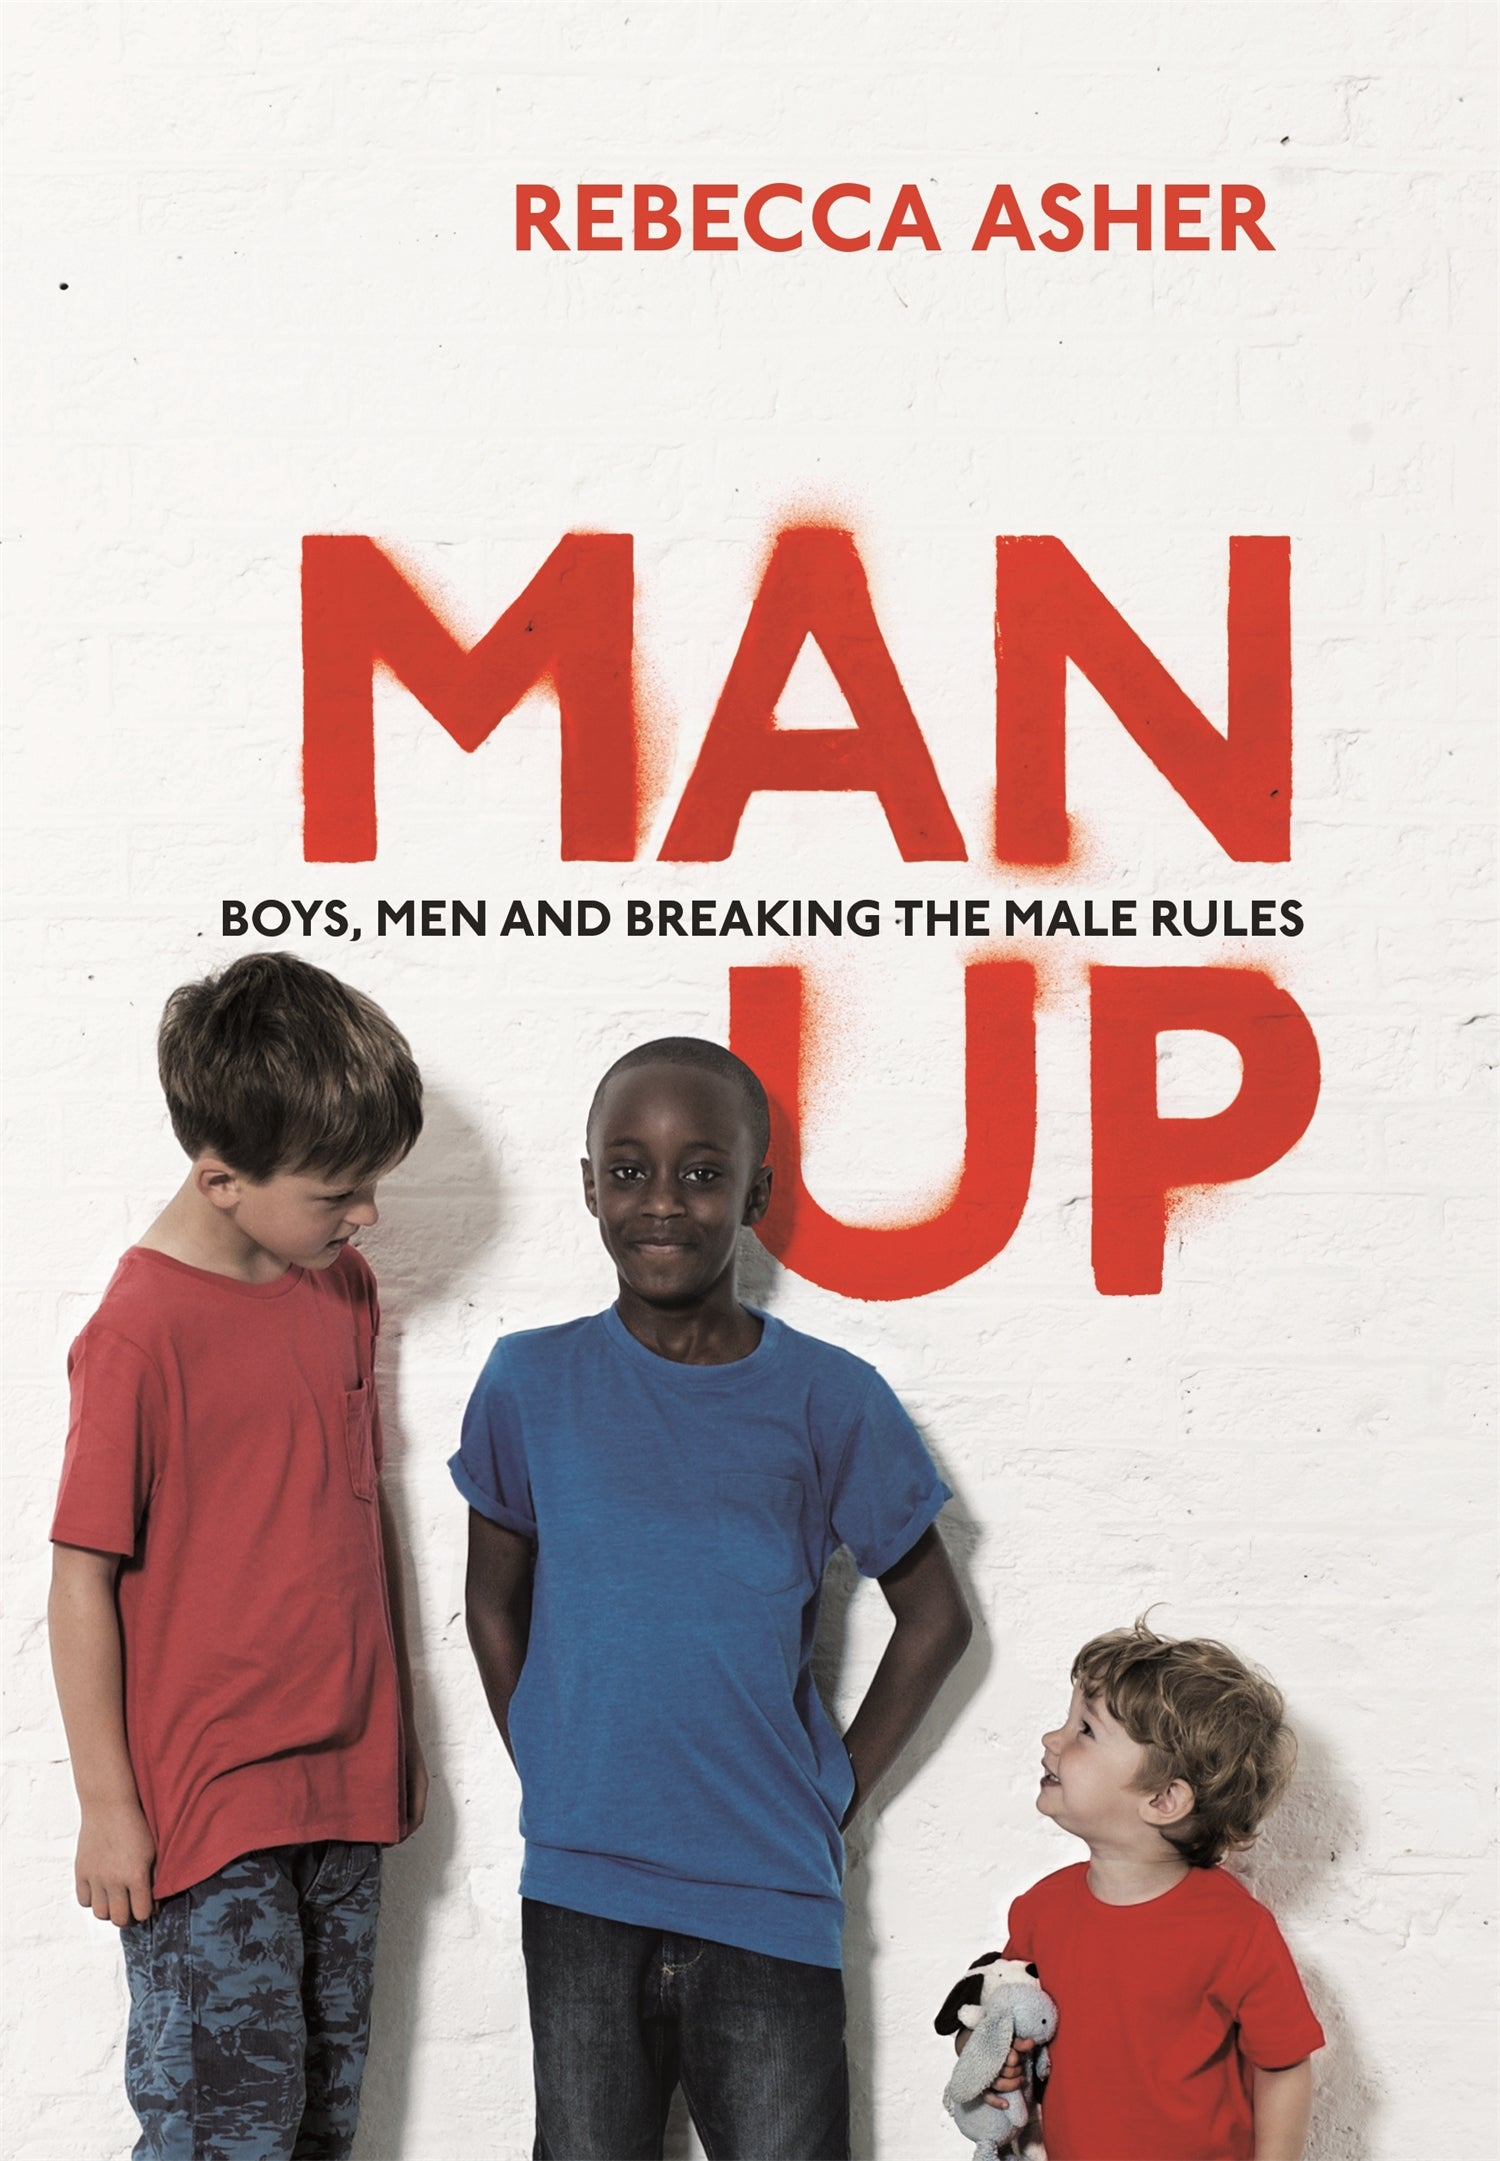 man up by rebecca asher book review asher makes her point clear man up by rebecca asher book review asher makes her point clear we should all be to ourselves the independent